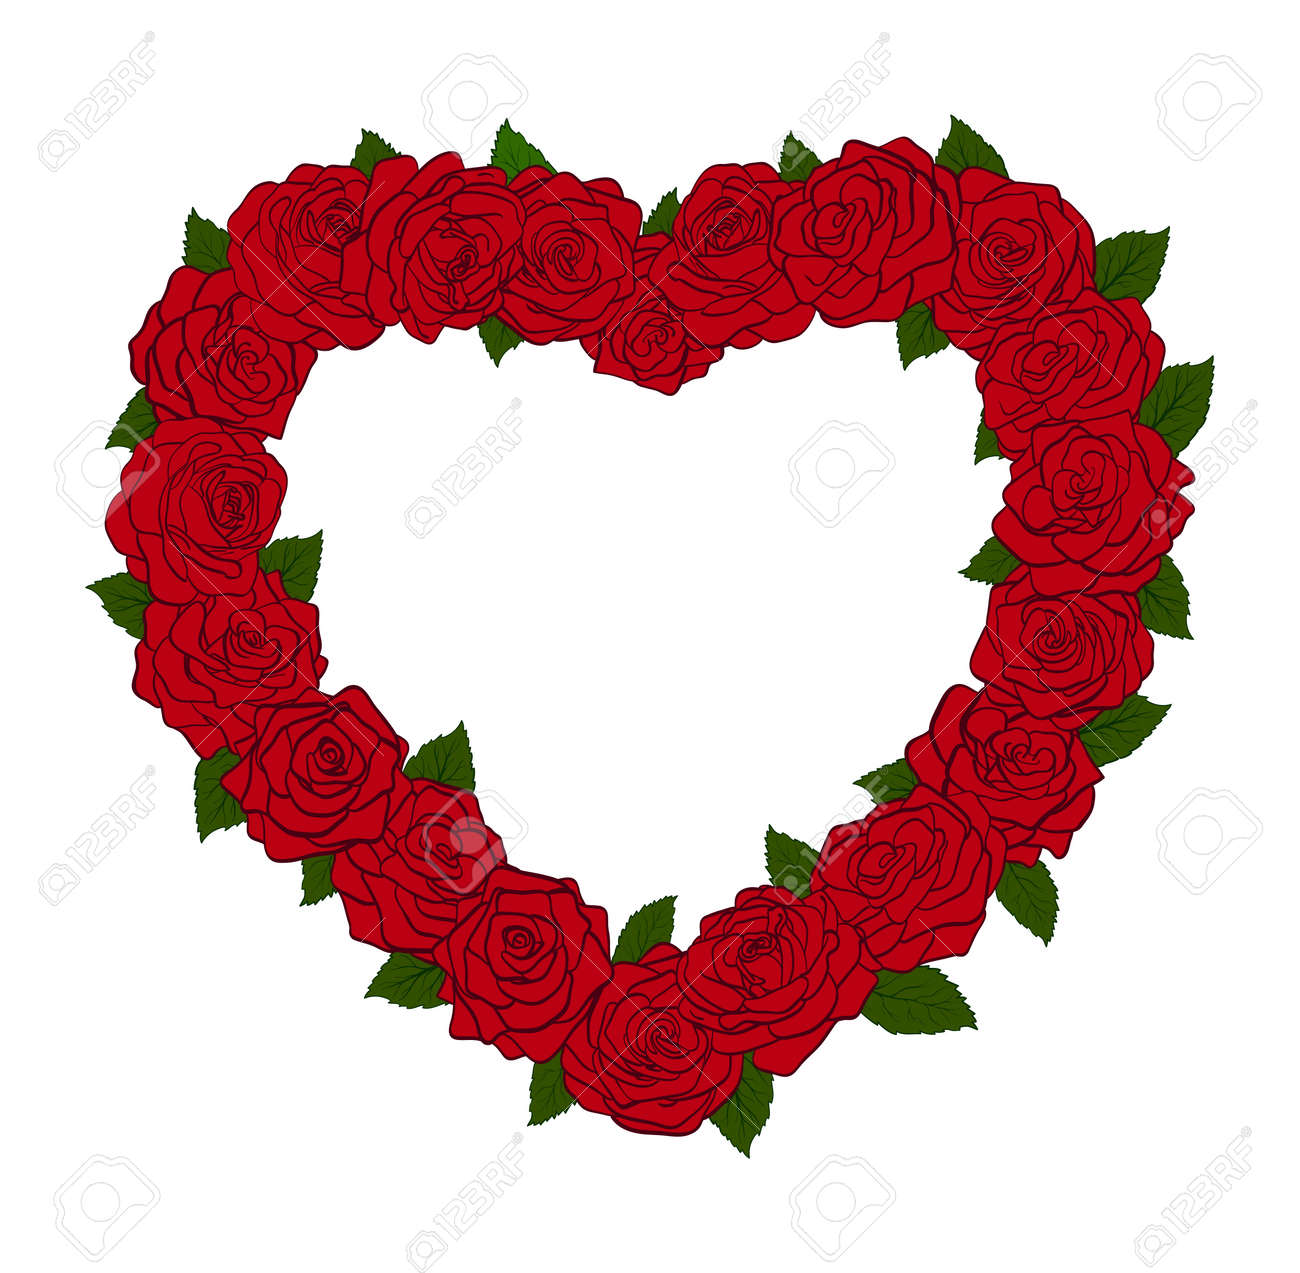 The frame in the form of a silhouette of the heart, bordered with flowers roses and leaves. Great item for card designs Stock Vector - 17218683